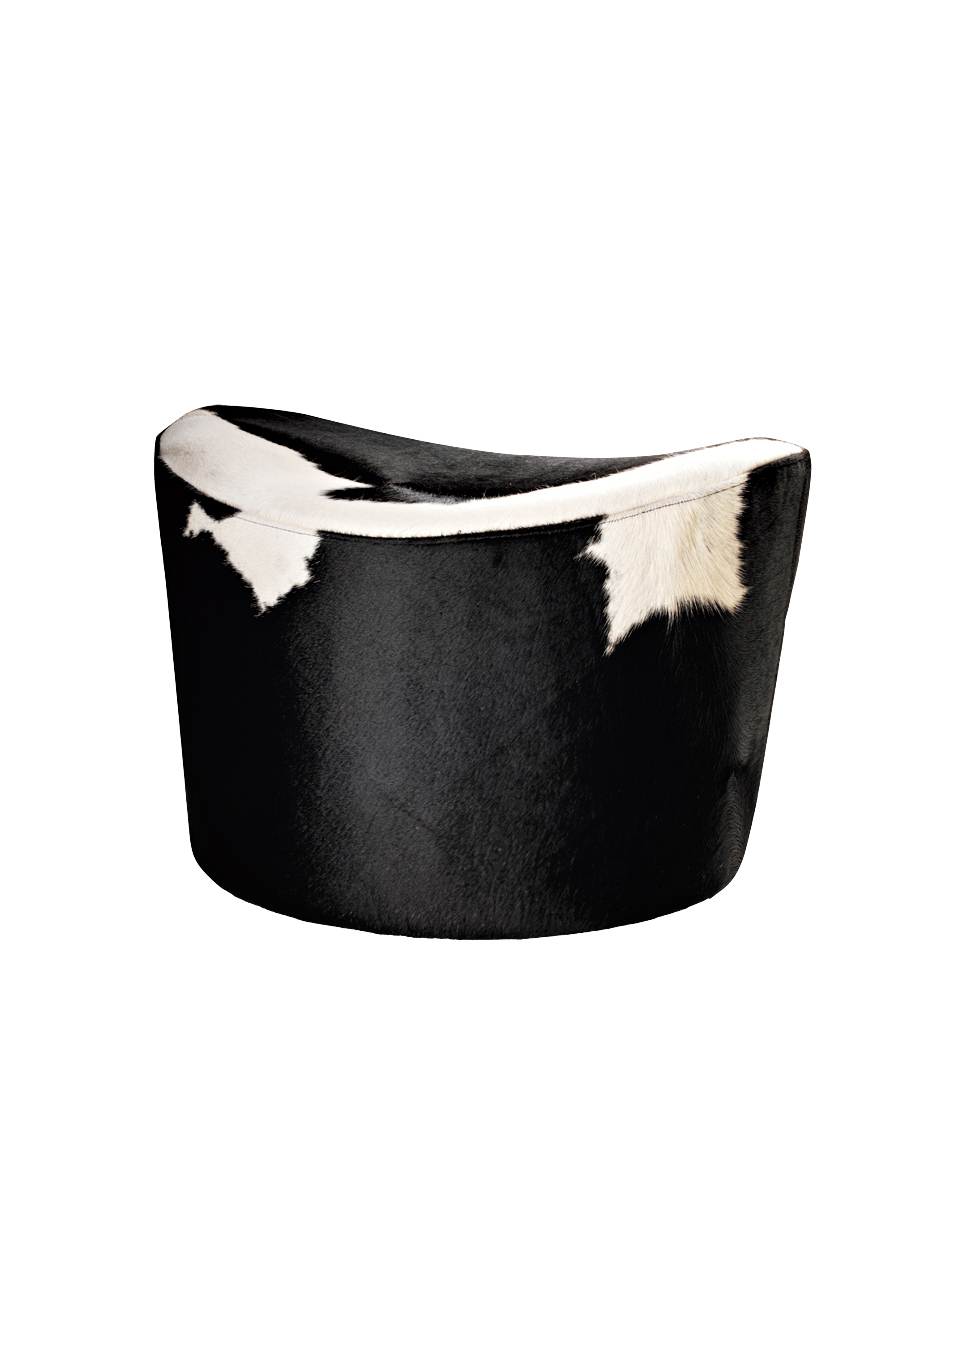 Stockholm footstool in natural cowhide leather